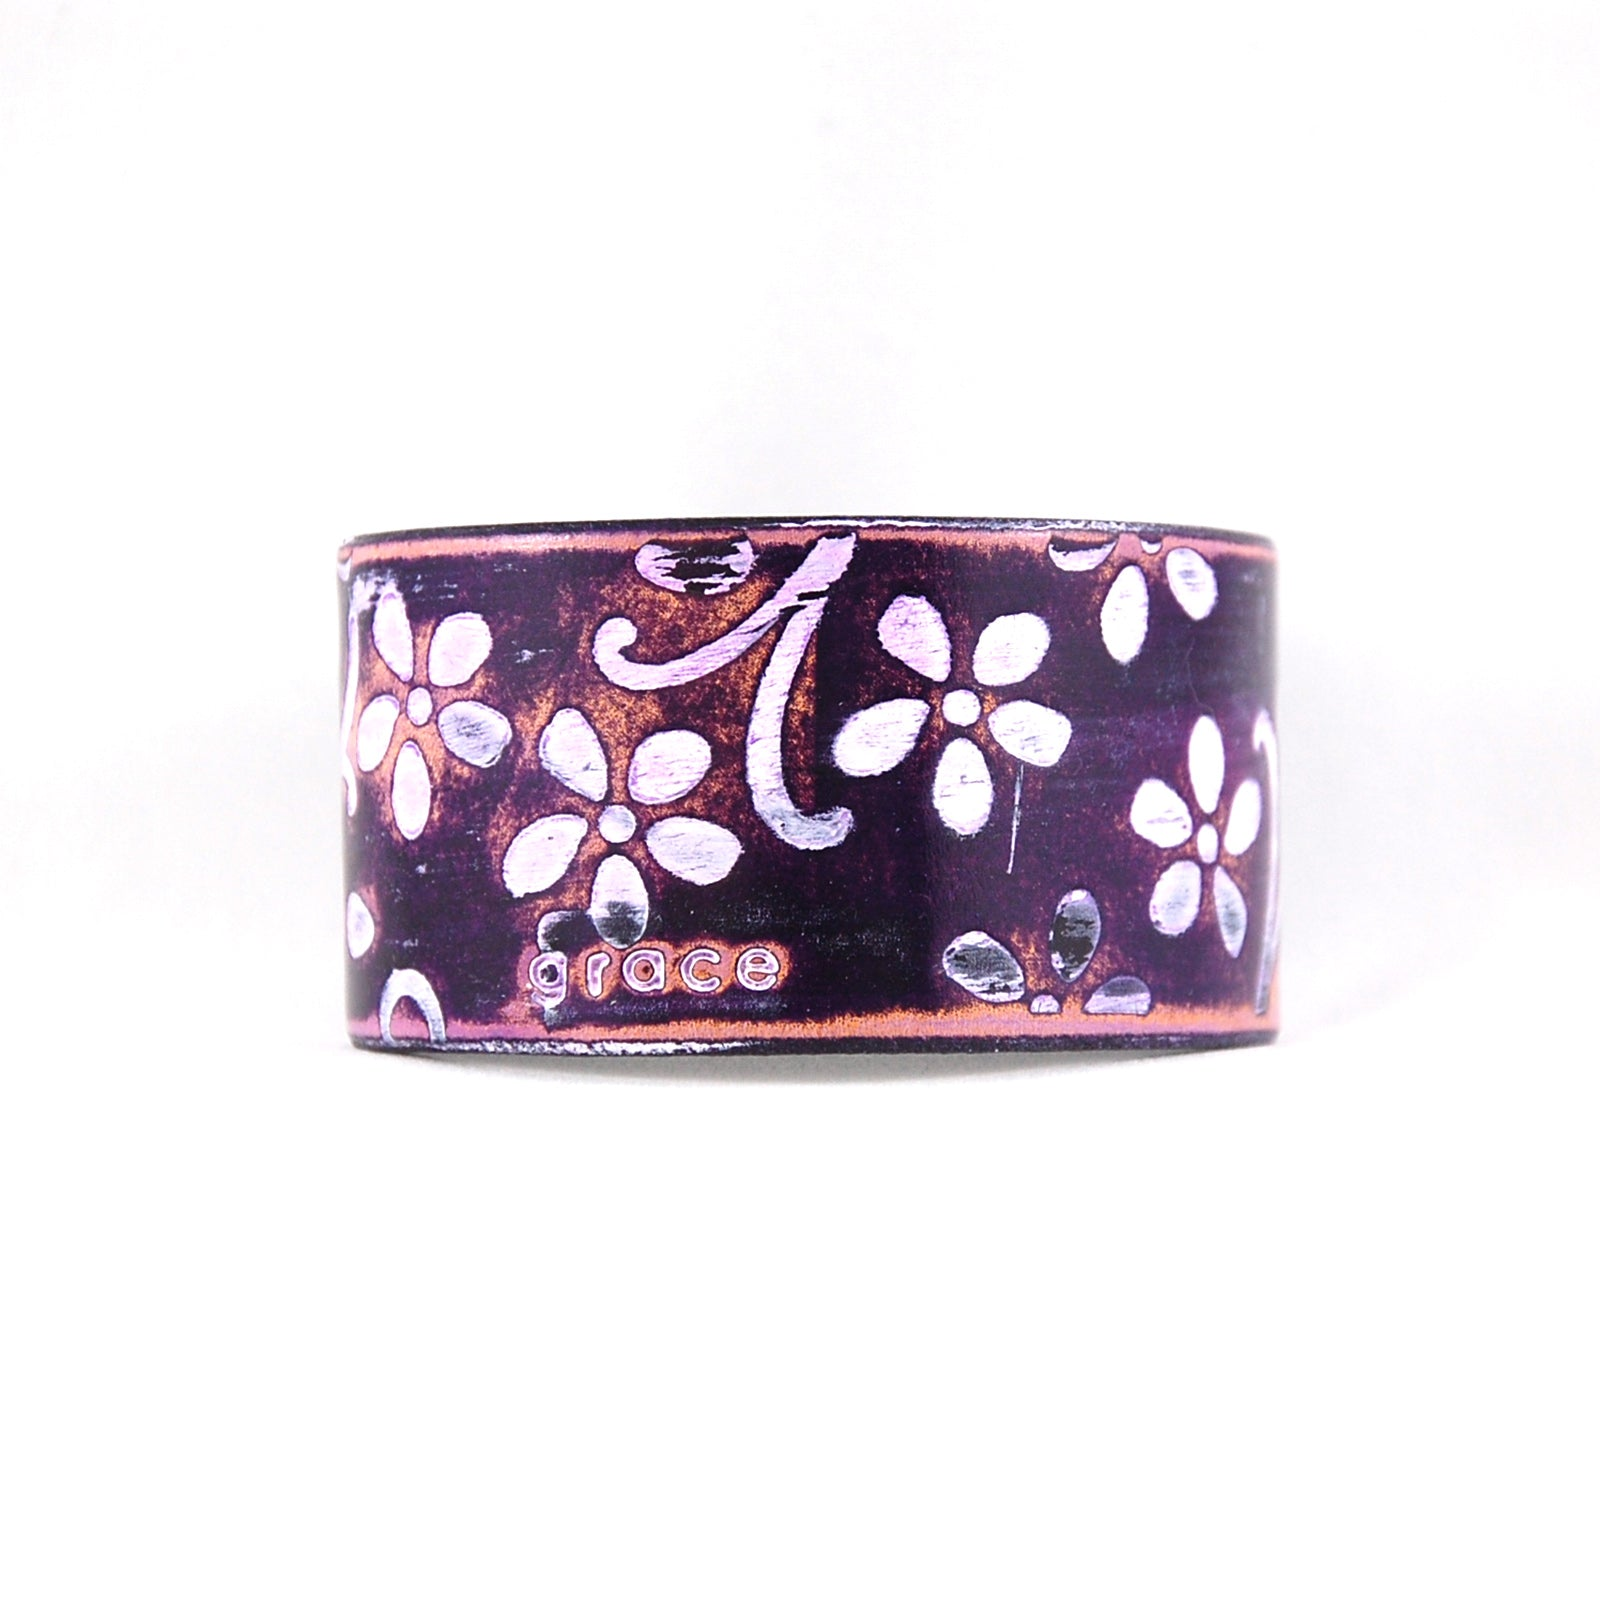 Embossed leather cuff bracelet stamped with the word Grace finished in purple and white